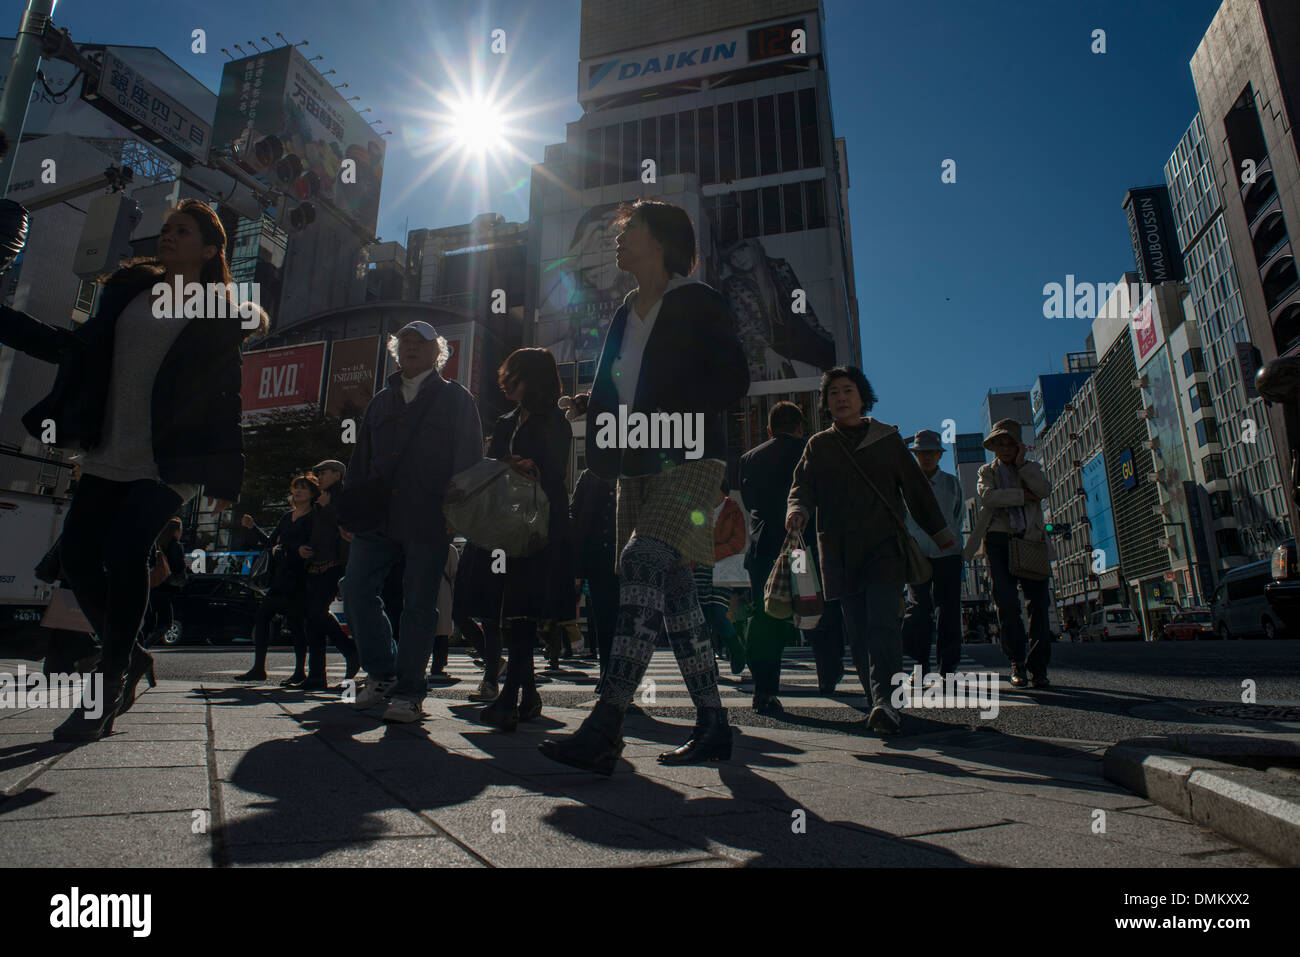 Pedestrians cross the road in Shinjuku, a major high end shopping district in Tokyo, Japan. Stock Photo